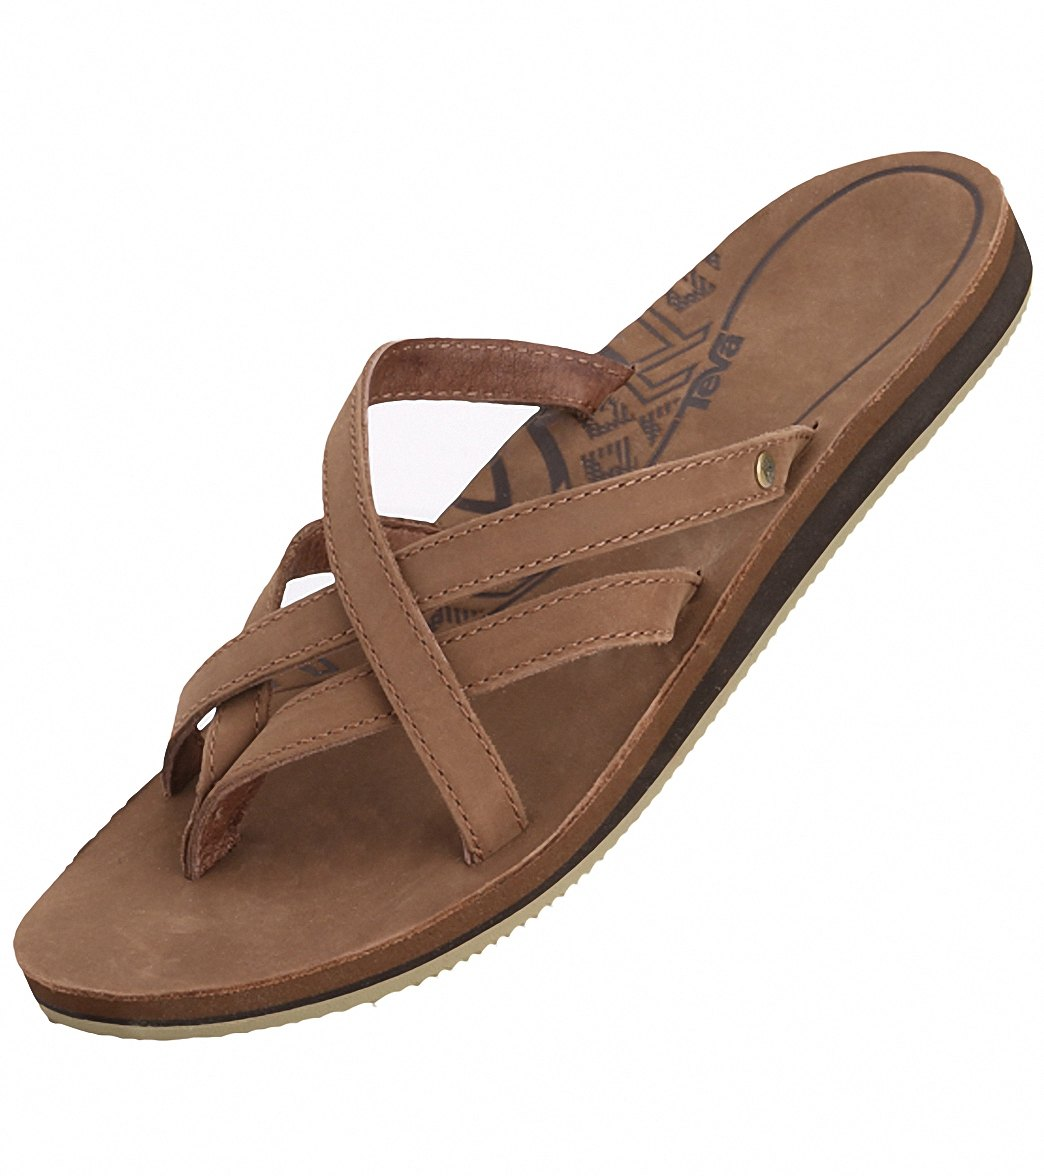 1b3974b8977cfd Share. Share on Facebook · Tweet on Twitter · Pin on Pinterest. Visit  Product Page close X. Teva Women s Olowahu Leather Sandal